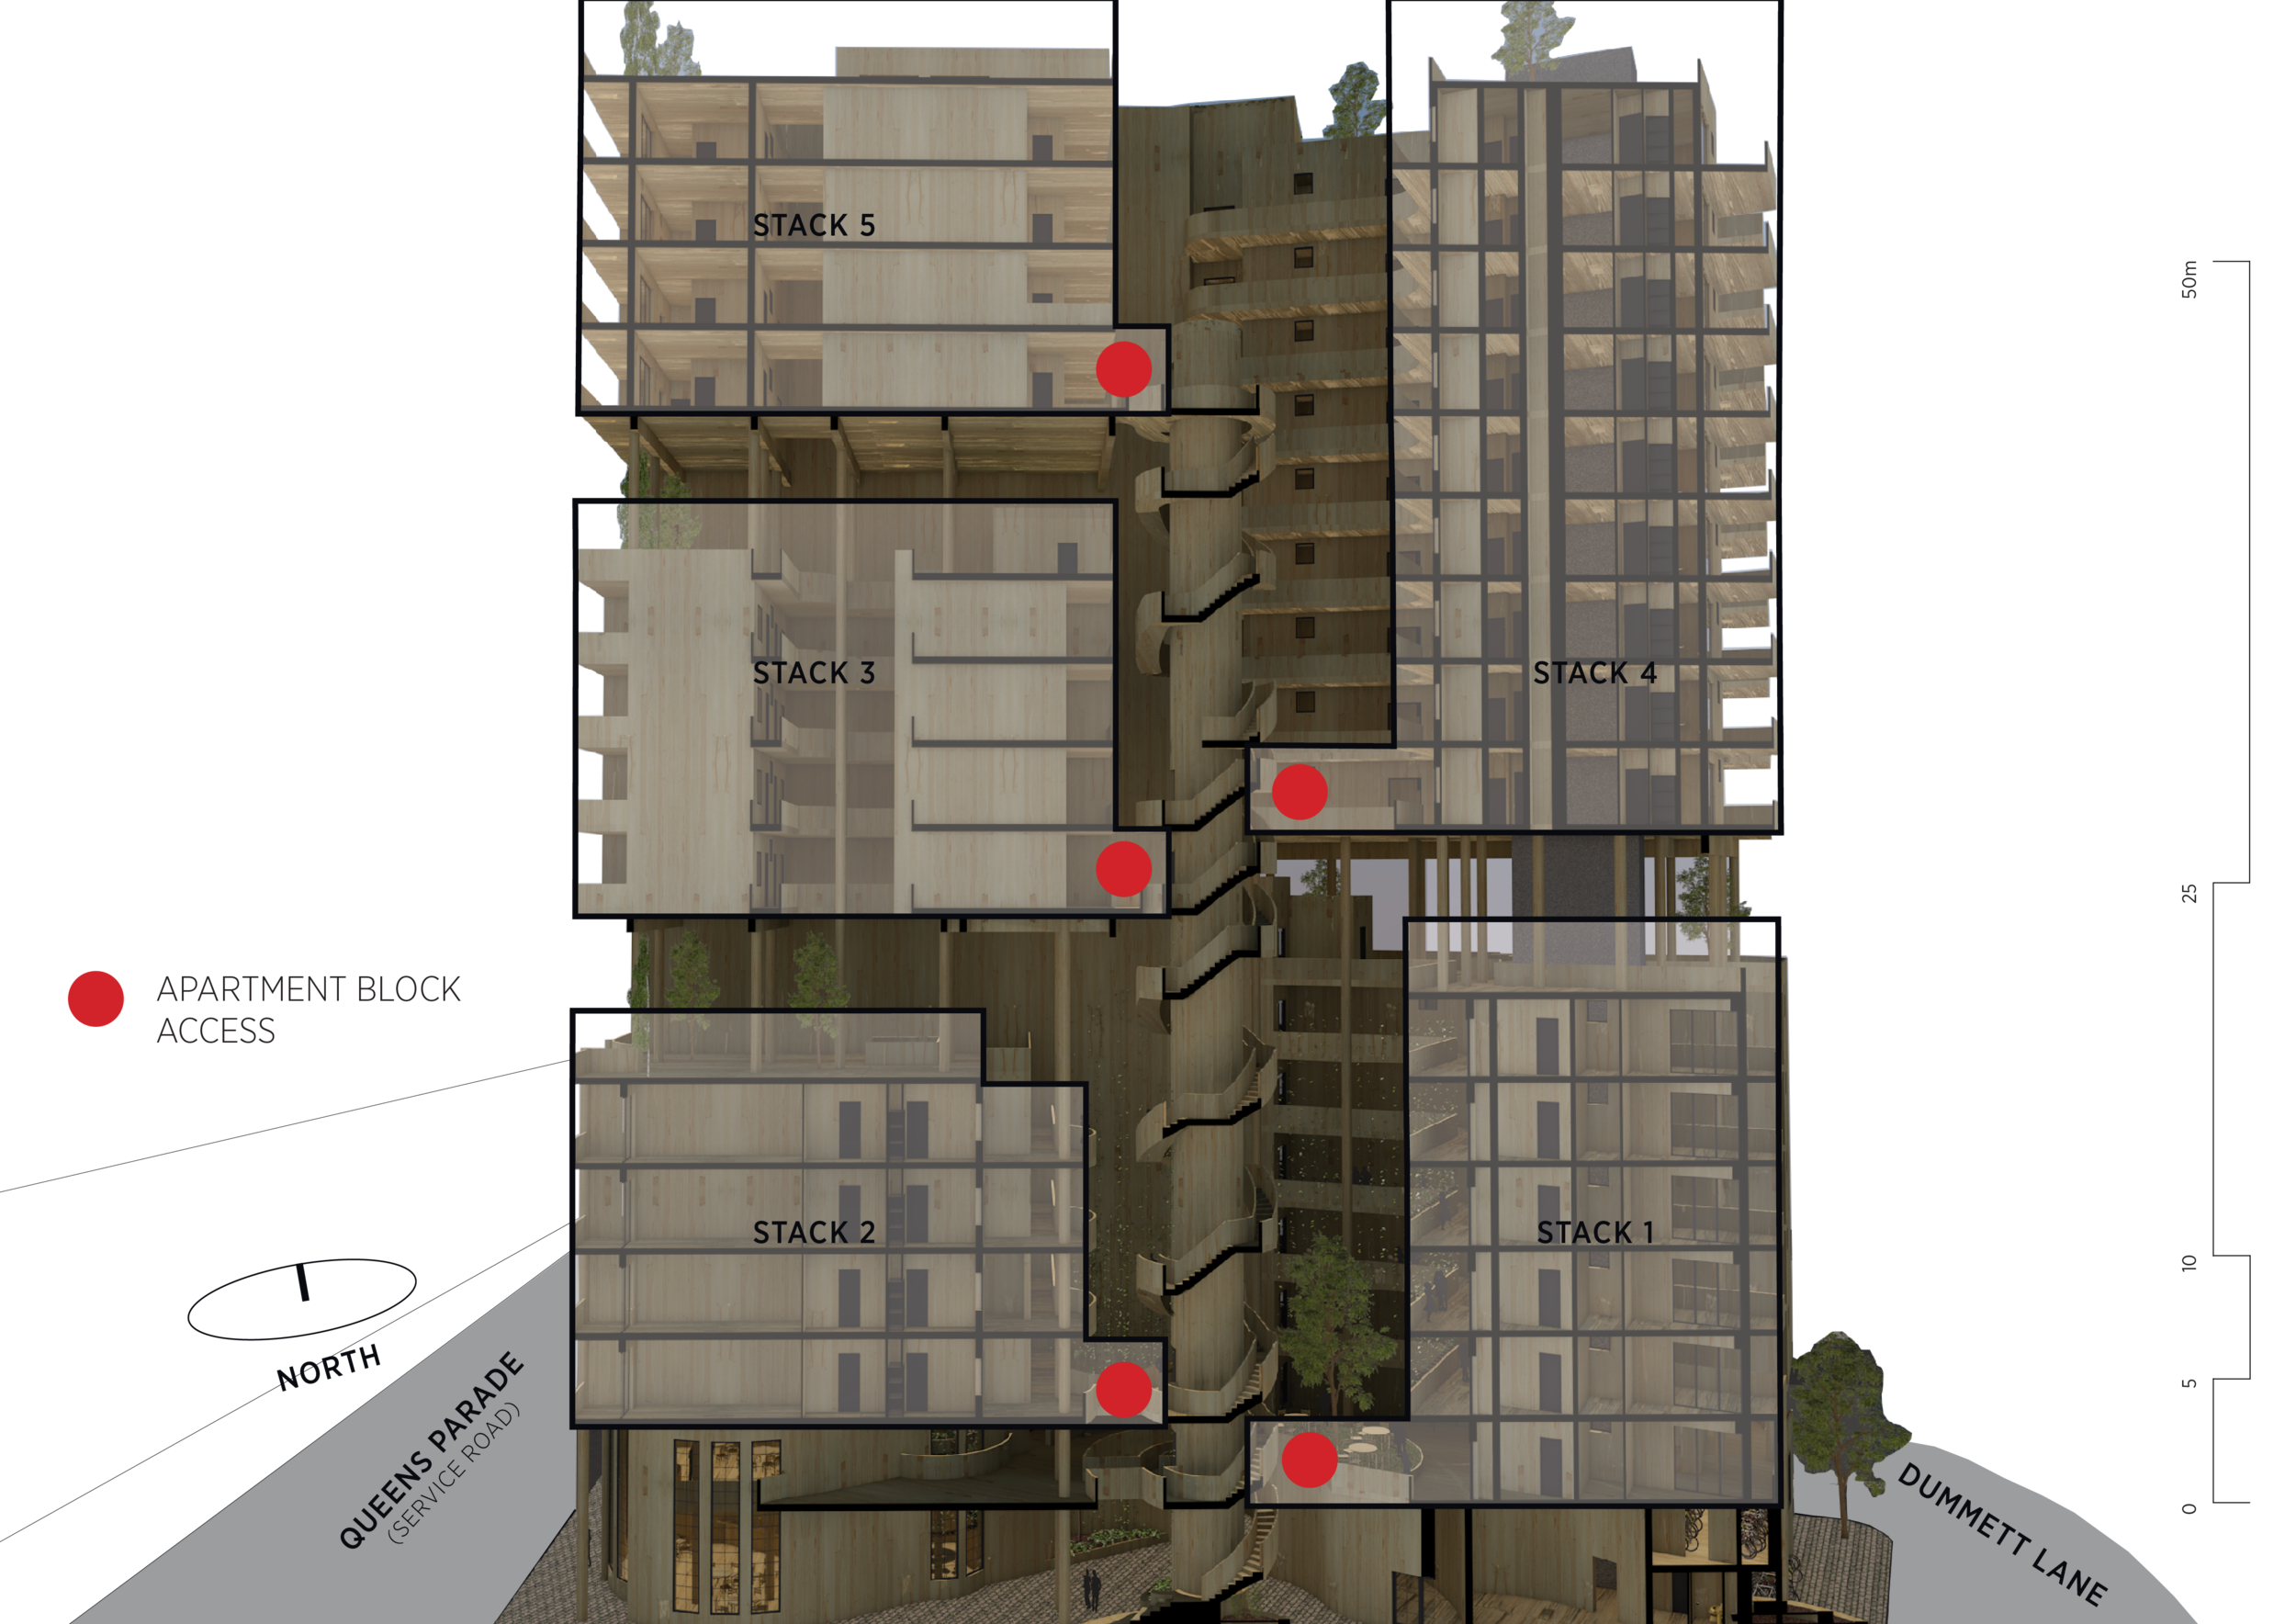 A section through Nightingale Stacks shows how the circulation works to each apartment stack.